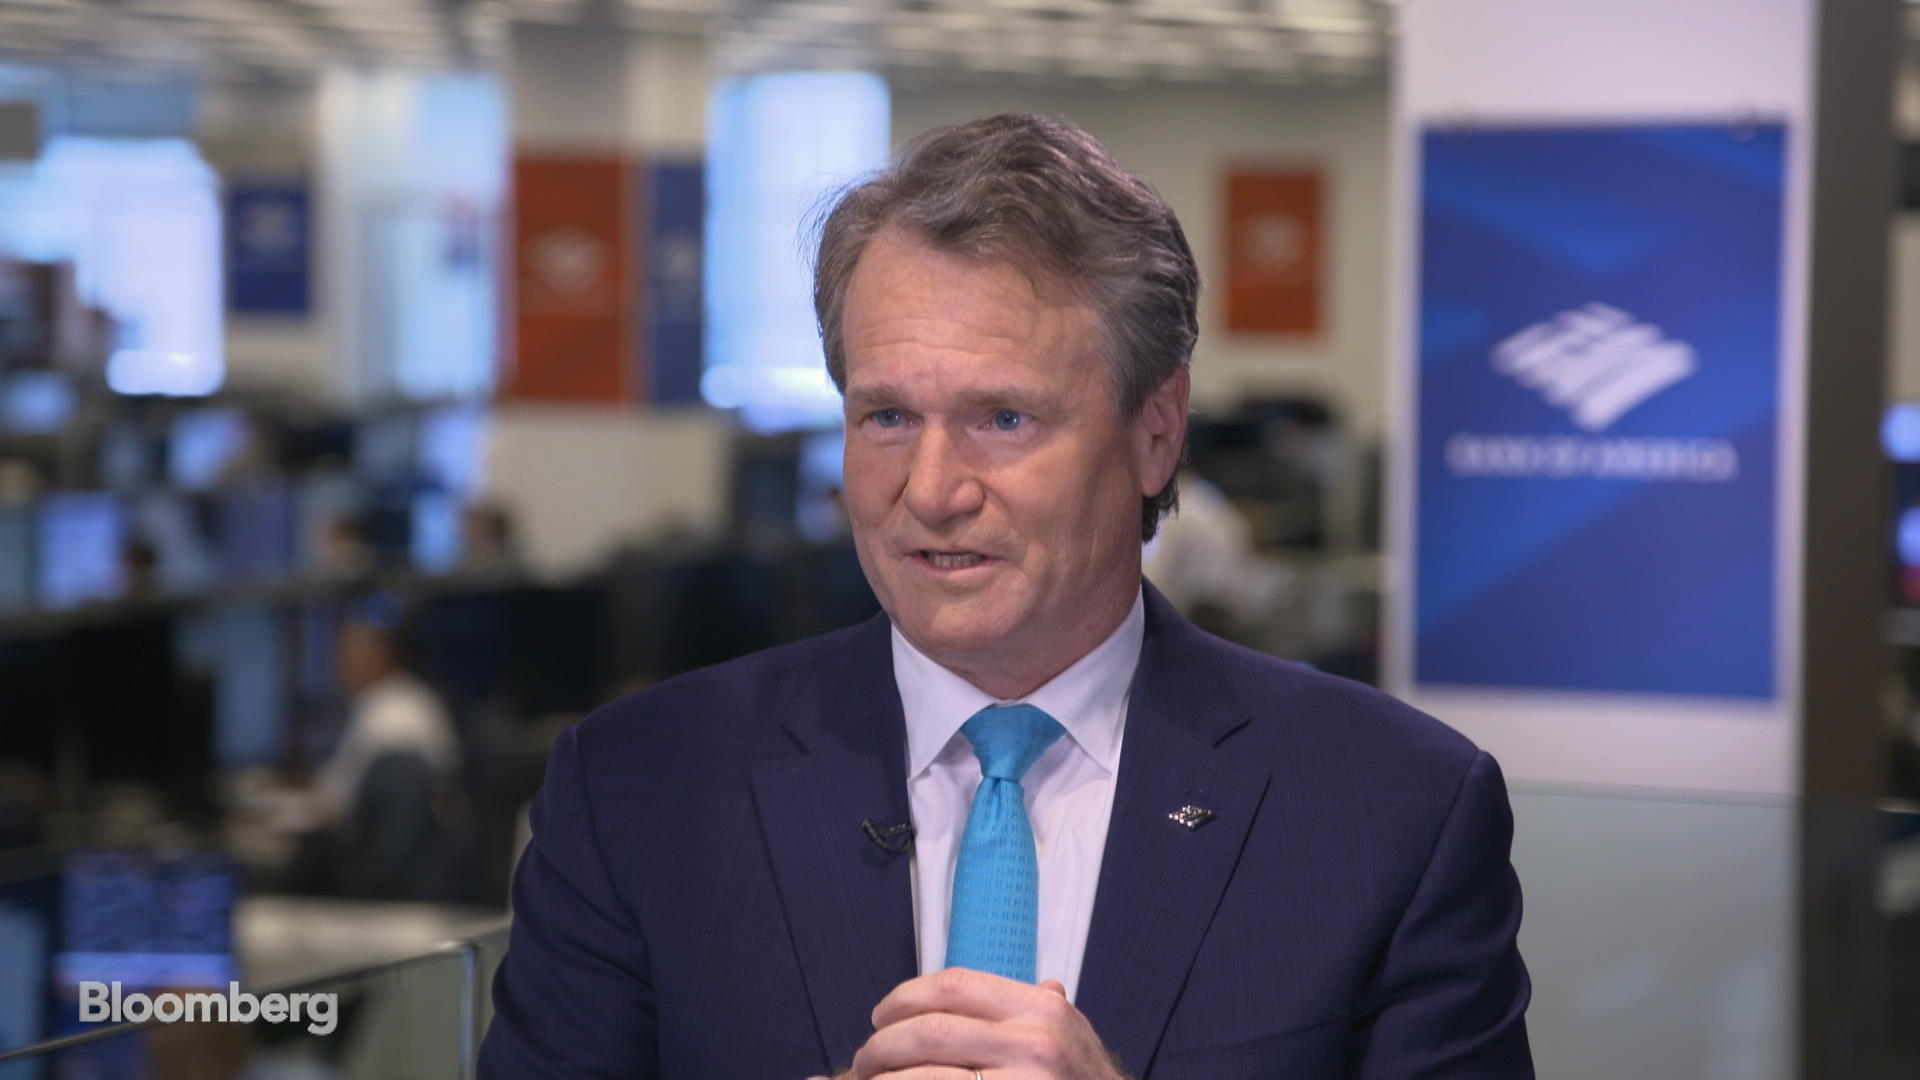 Bank of America CEO Moynihan on the Economy, Recession Risks and Trade